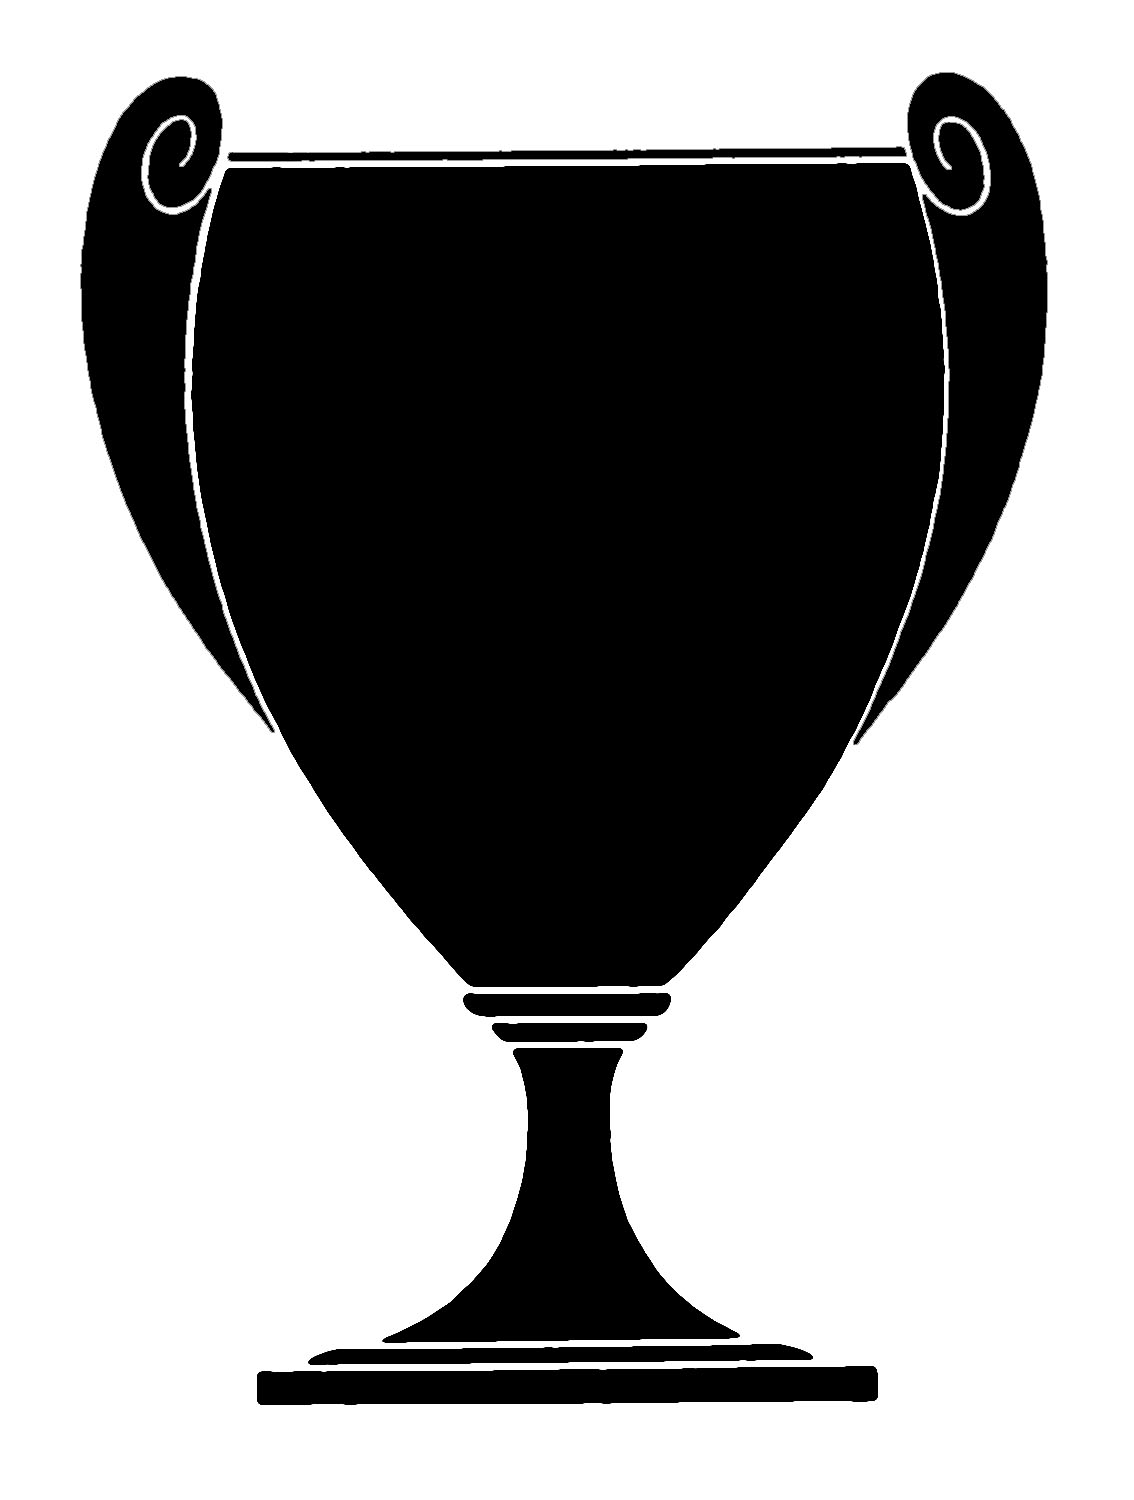 vintage image loving cup trophy silhouette the graphics fairy